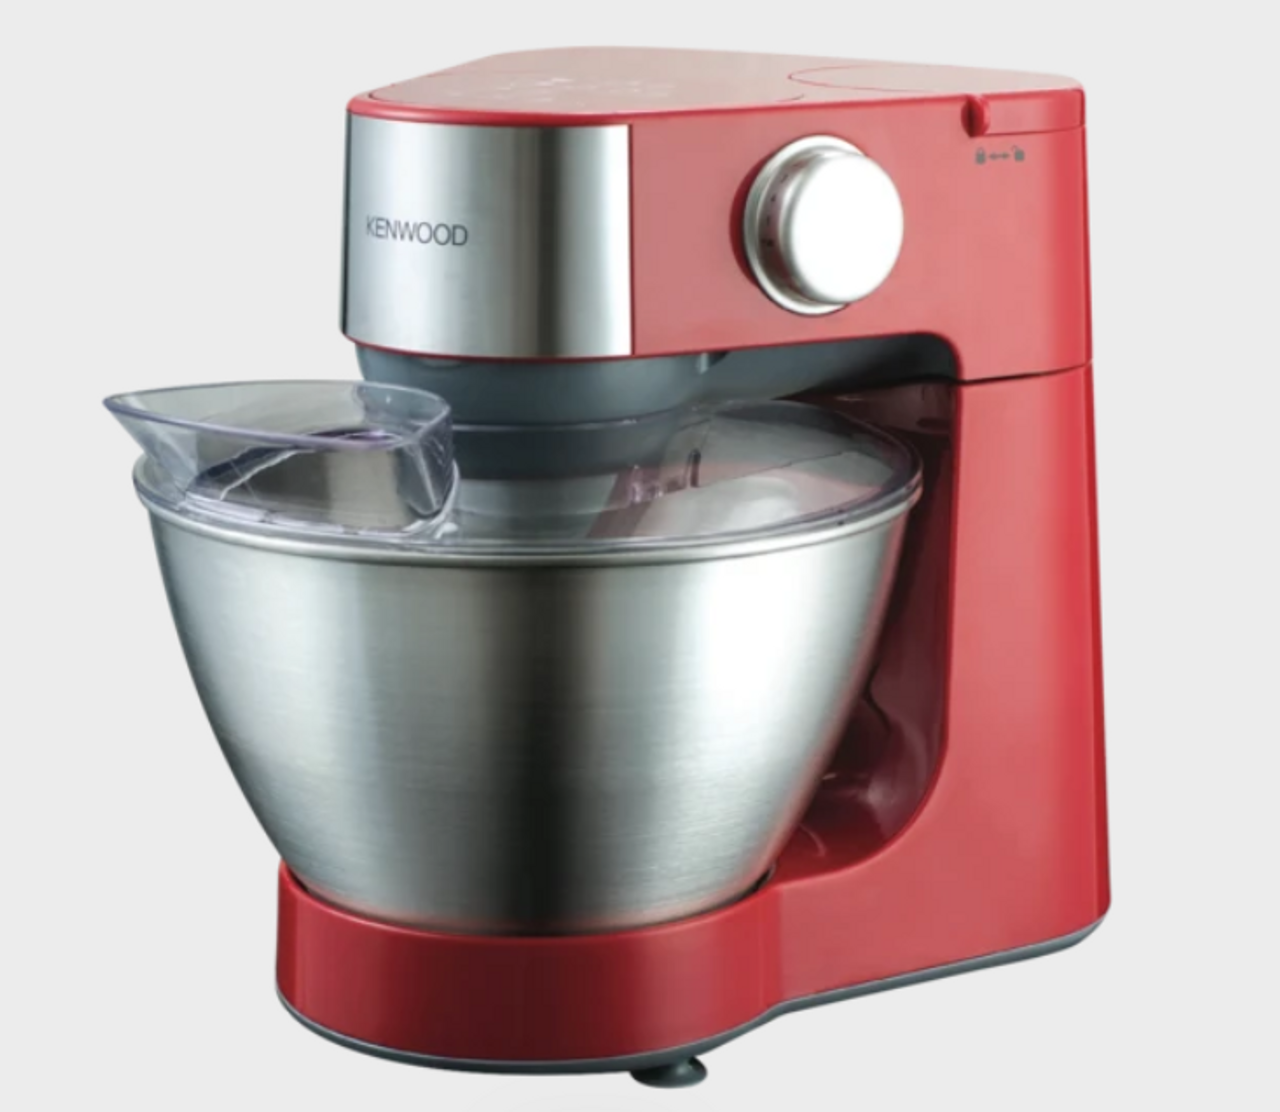 Kenwood KM280RD Prospero Mixer Kitchen Machine with 4.3L Bowl- Red- RRP $249.00